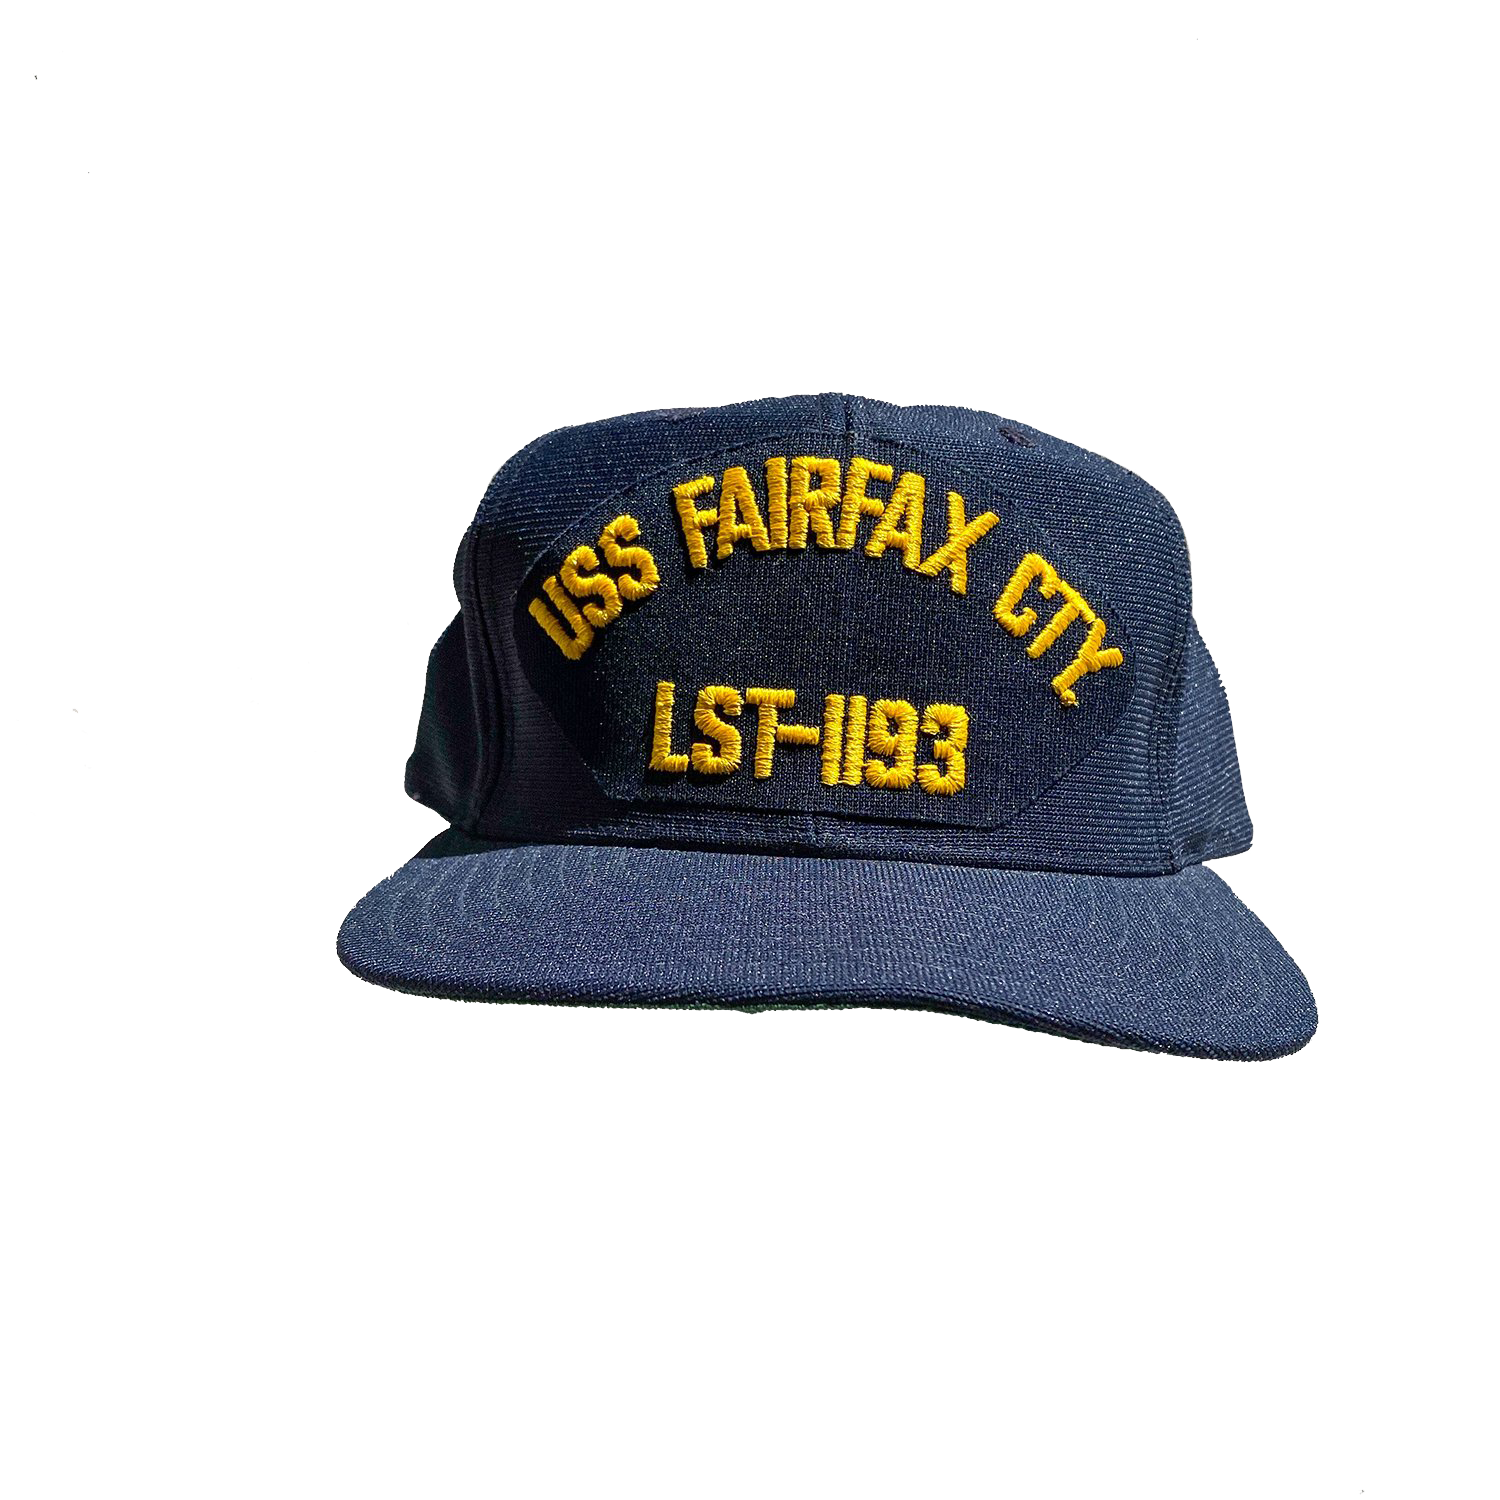 Vintage USS Fairfax County U.S. Navy Hat